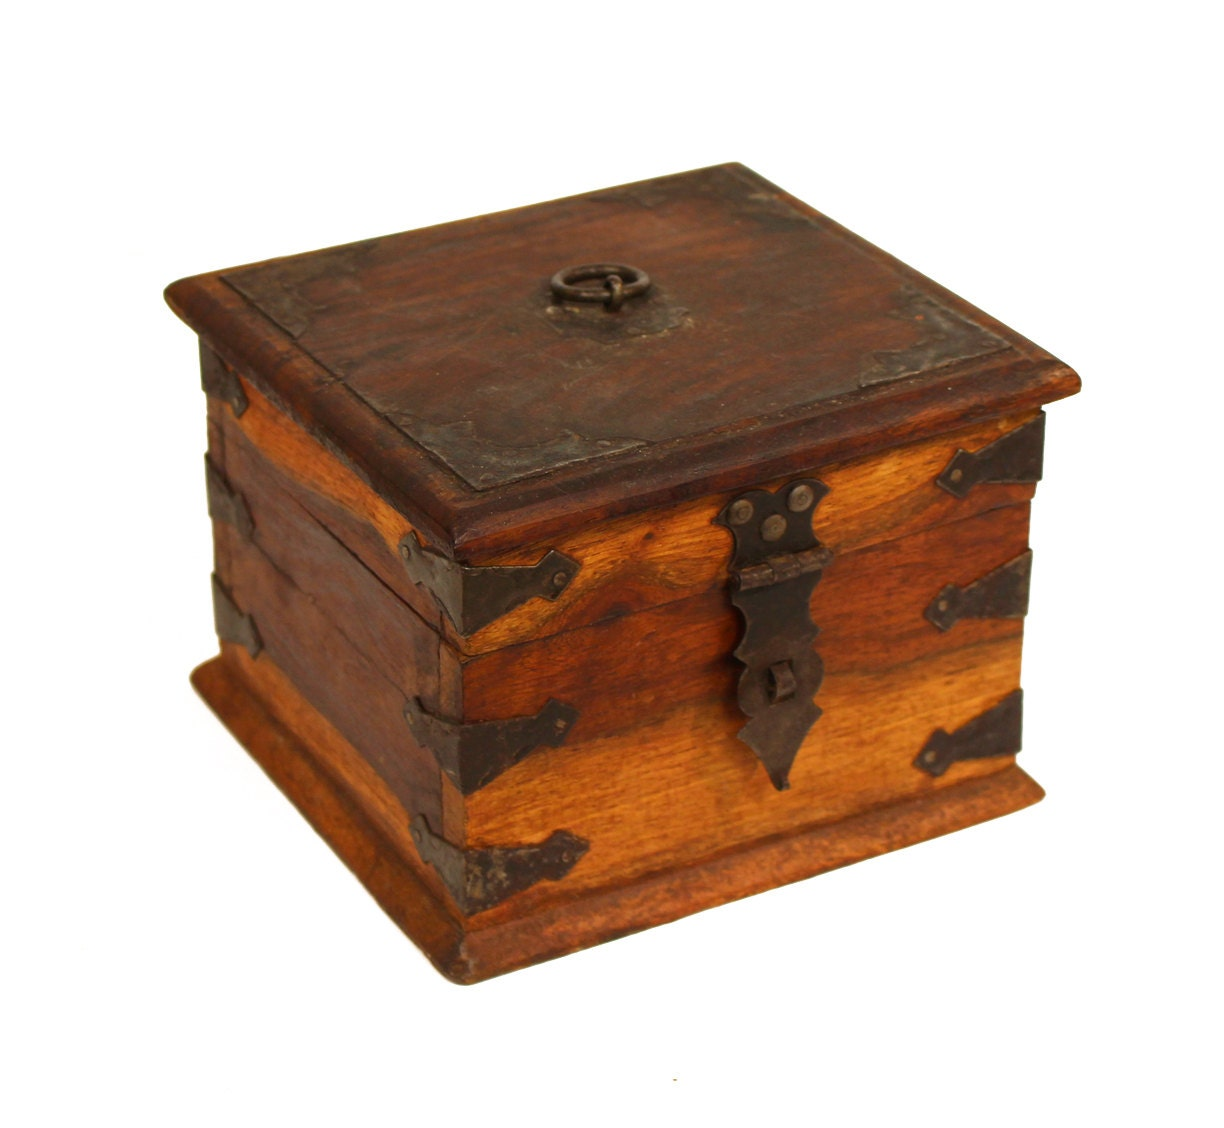 How To Make A Decorative Wooden Box: Decorative Wood Box